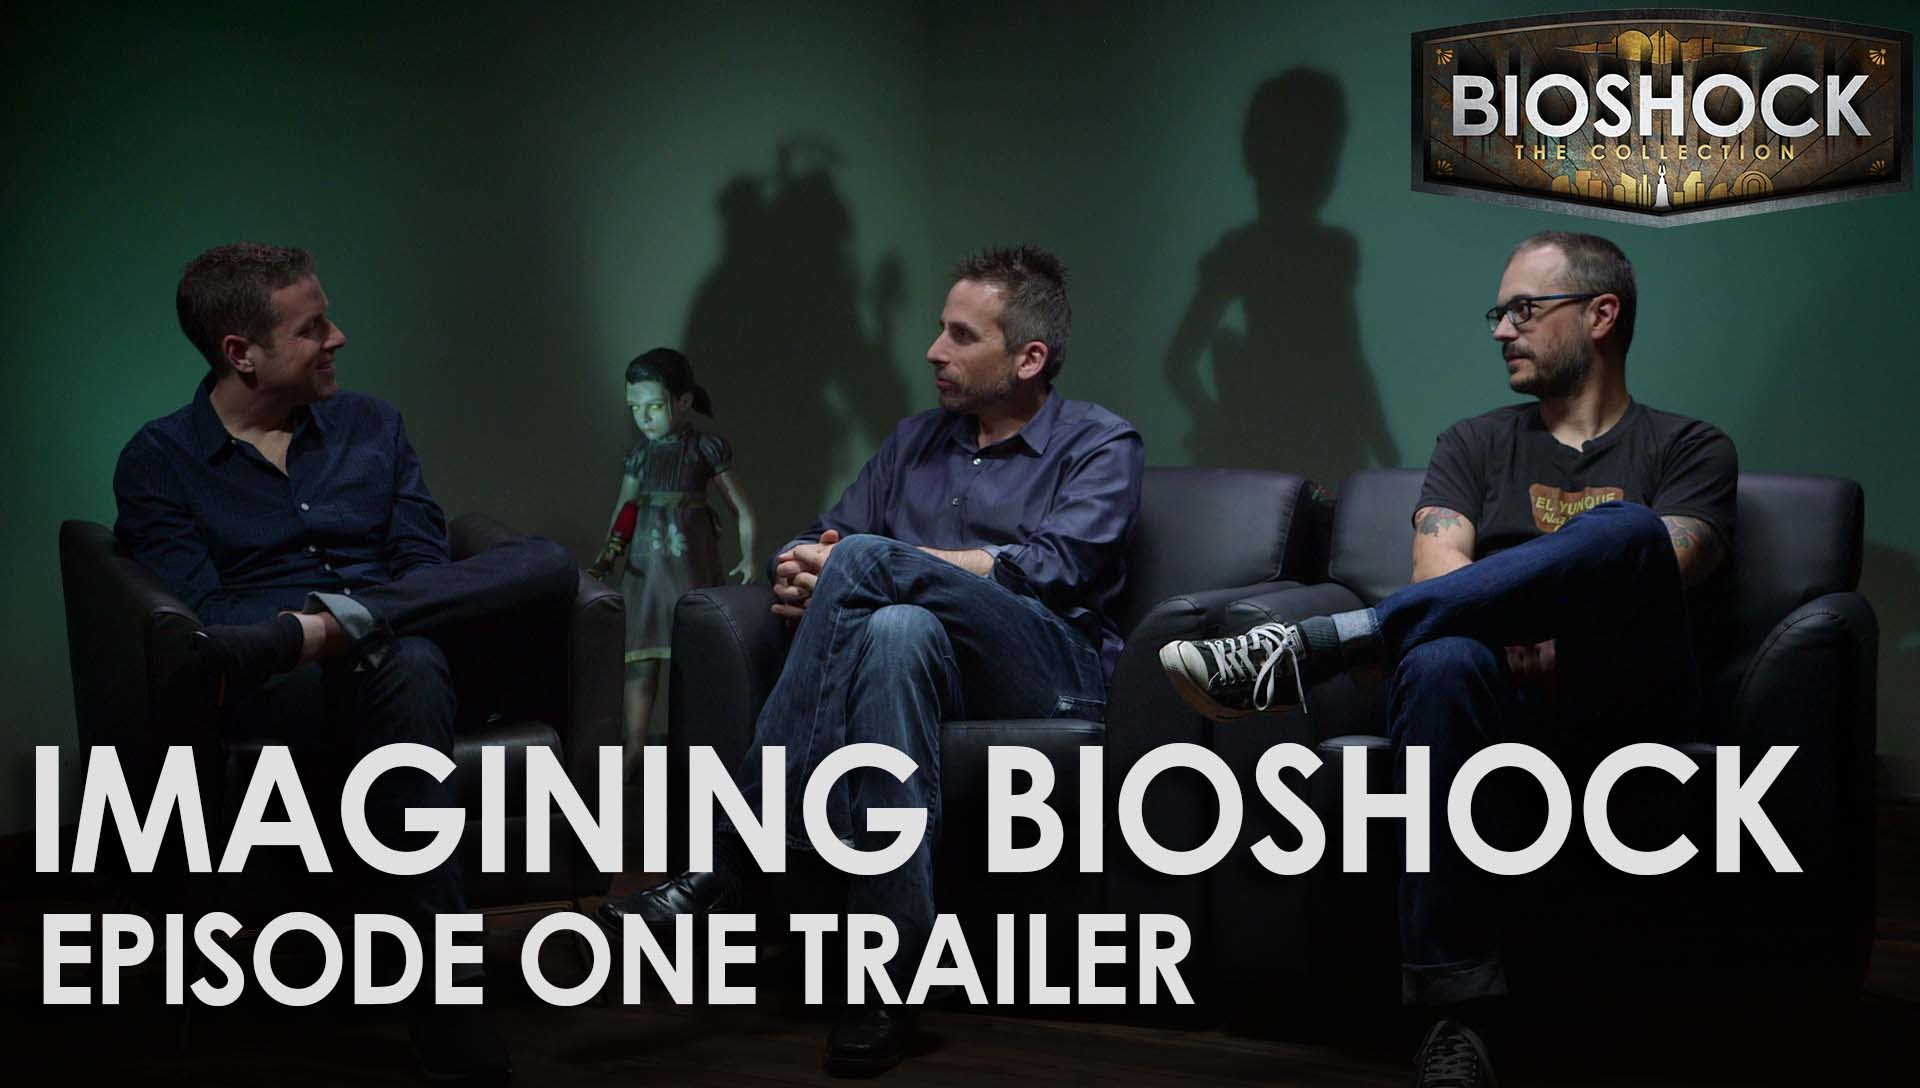 Imagining BioShock: Episode One Trailer